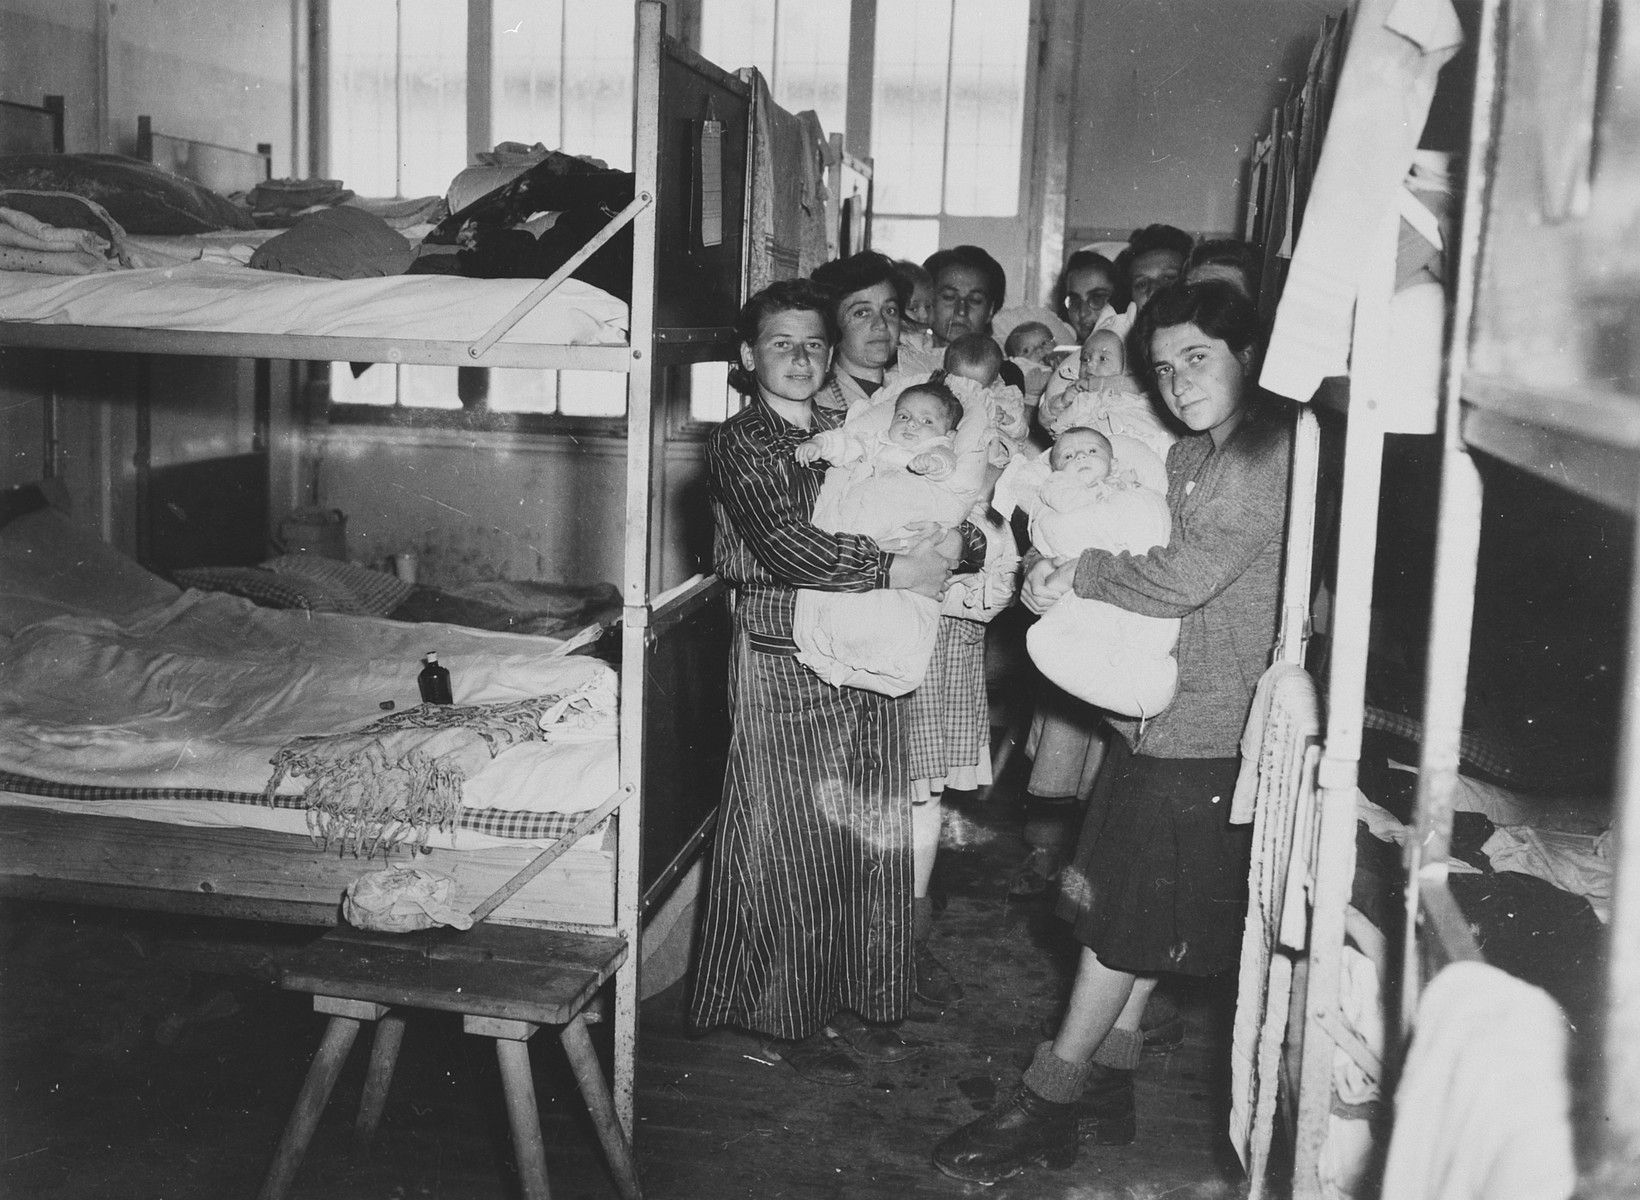 Group portrait of Hungarian Jewish mothers and their infants in a Dachau sub-camp in Germany.     Pictured left to right are Eva Schwartz with her daughter Maria; Dora Loewy and her daughter Szuszi; Boeszi Legmann with her son Gyuri; Suri Hirsch with her son Yossi; Miriam Schwarcz Rosenthal with her son Laci (Leslie); Magda Fenyvesi with her son Judit, and Ibolya Kovacs with her daughter Agnes.